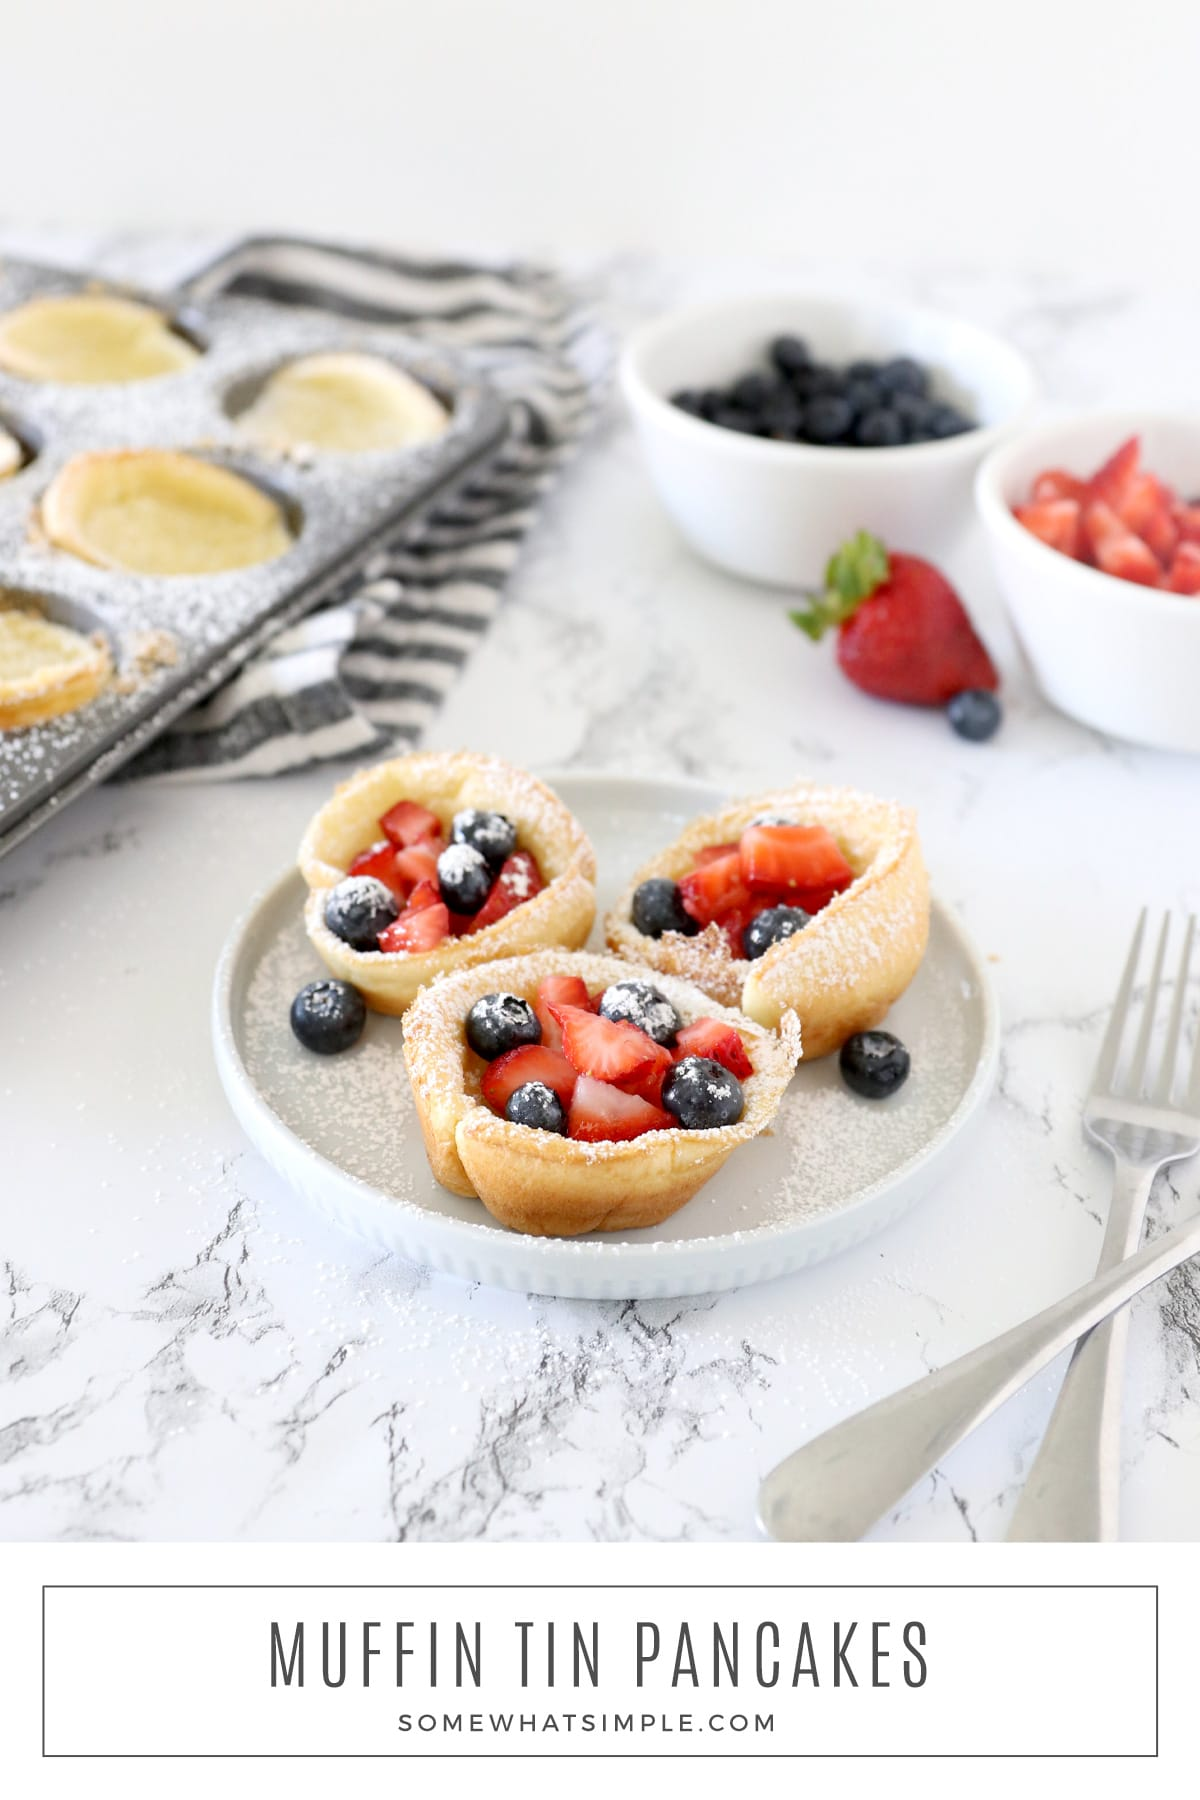 Baked in muffin tins, these Pancake Popovers make a tiny version of your favorite German pancakes or Yorkshire Pudding. They are simple to make and totally delicious! via @somewhatsimple